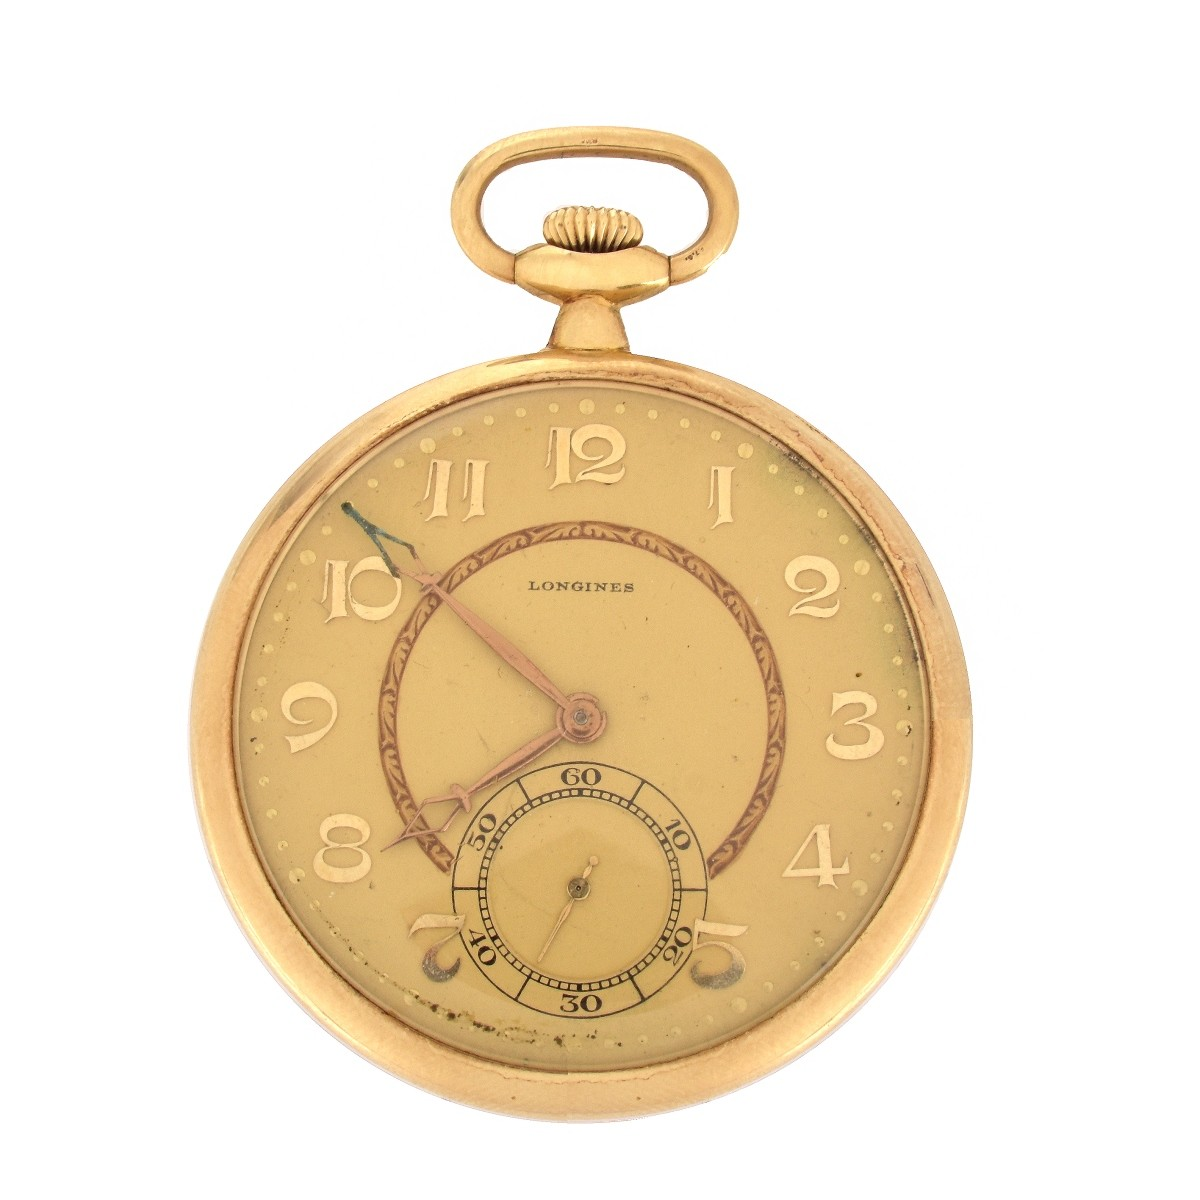 Longines 14K Pocket Watch